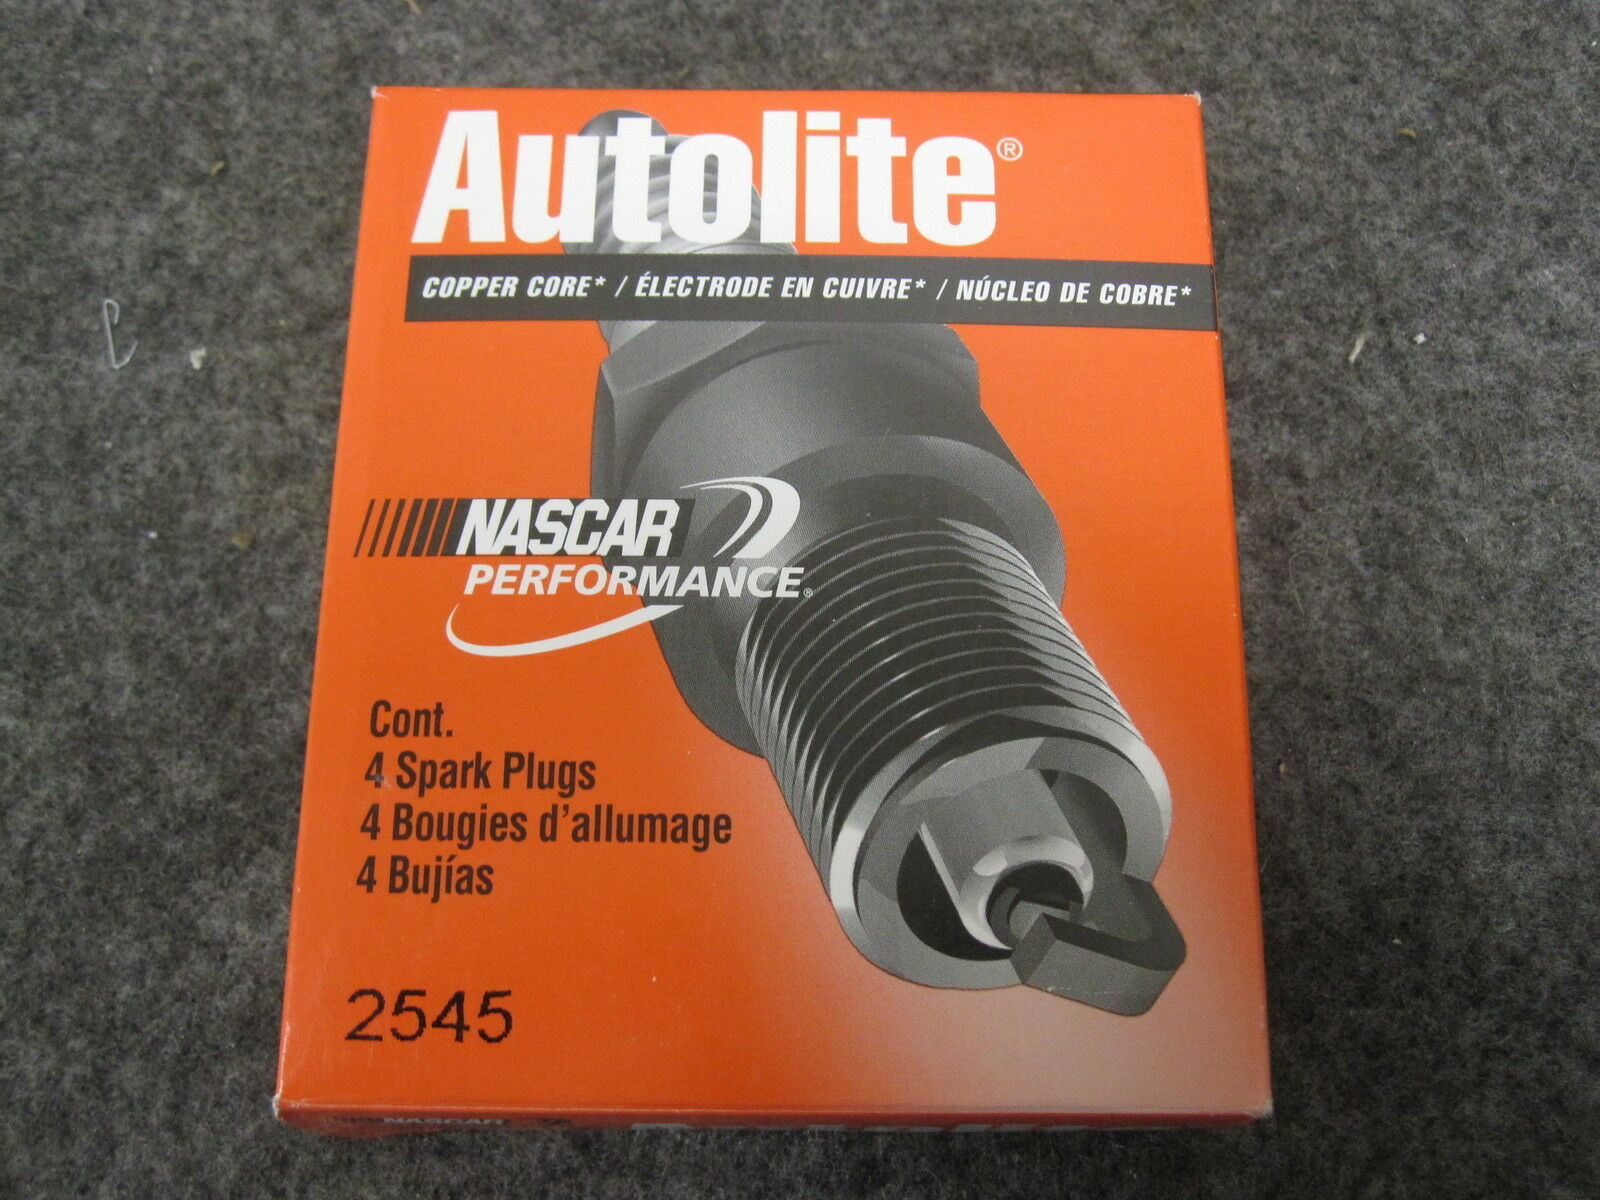 Autolite 2545 Spark Plugs Pack of 4 New